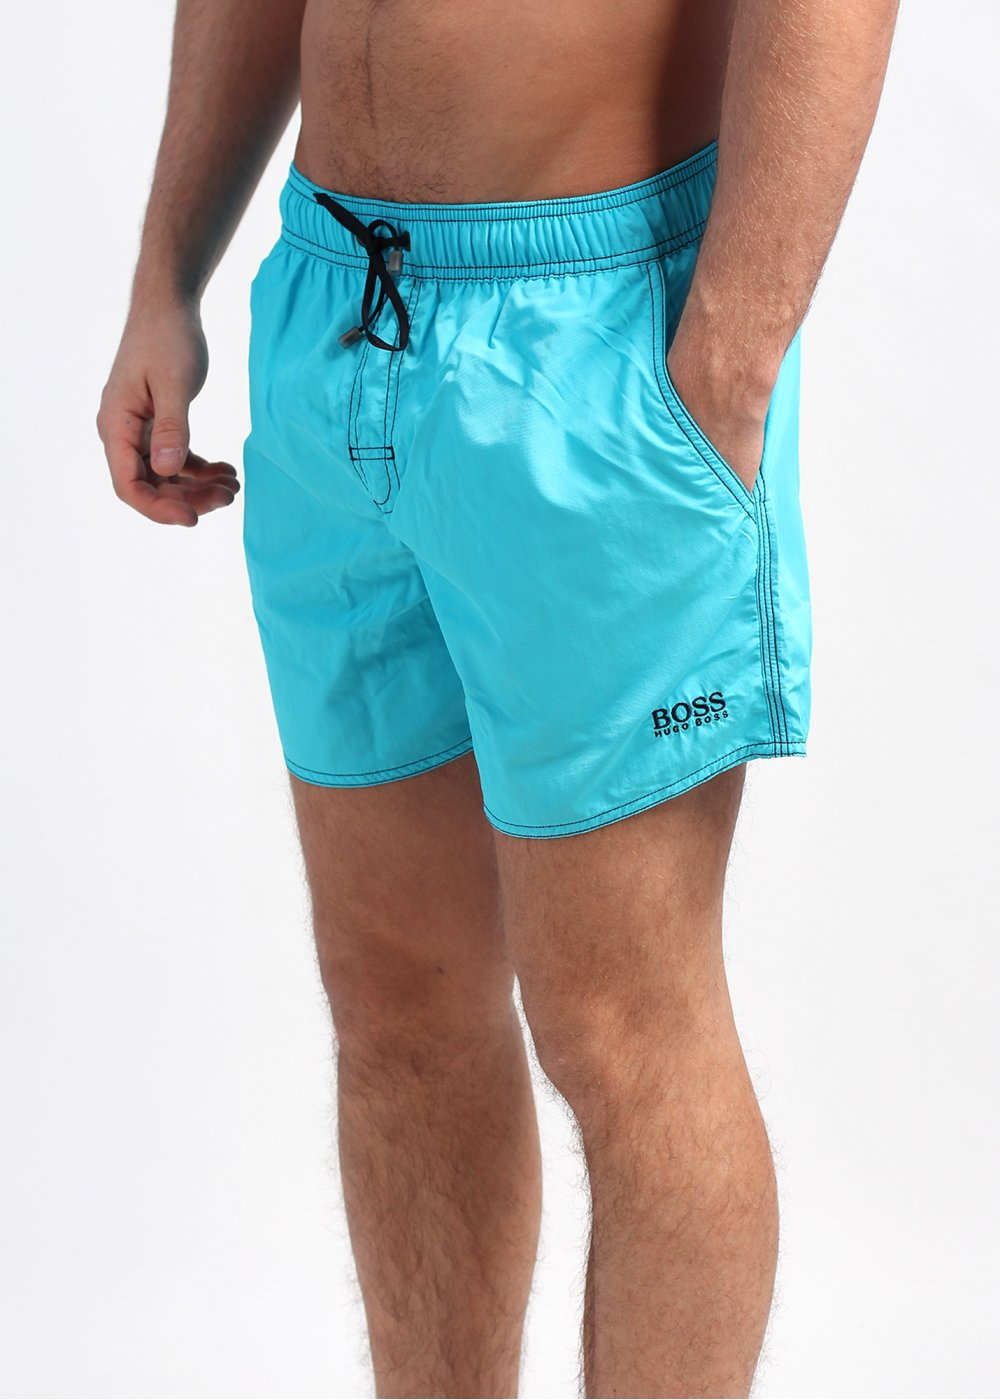 534d99a527b47 Hugo Boss Black Lobster Swim Shorts - Light Blue